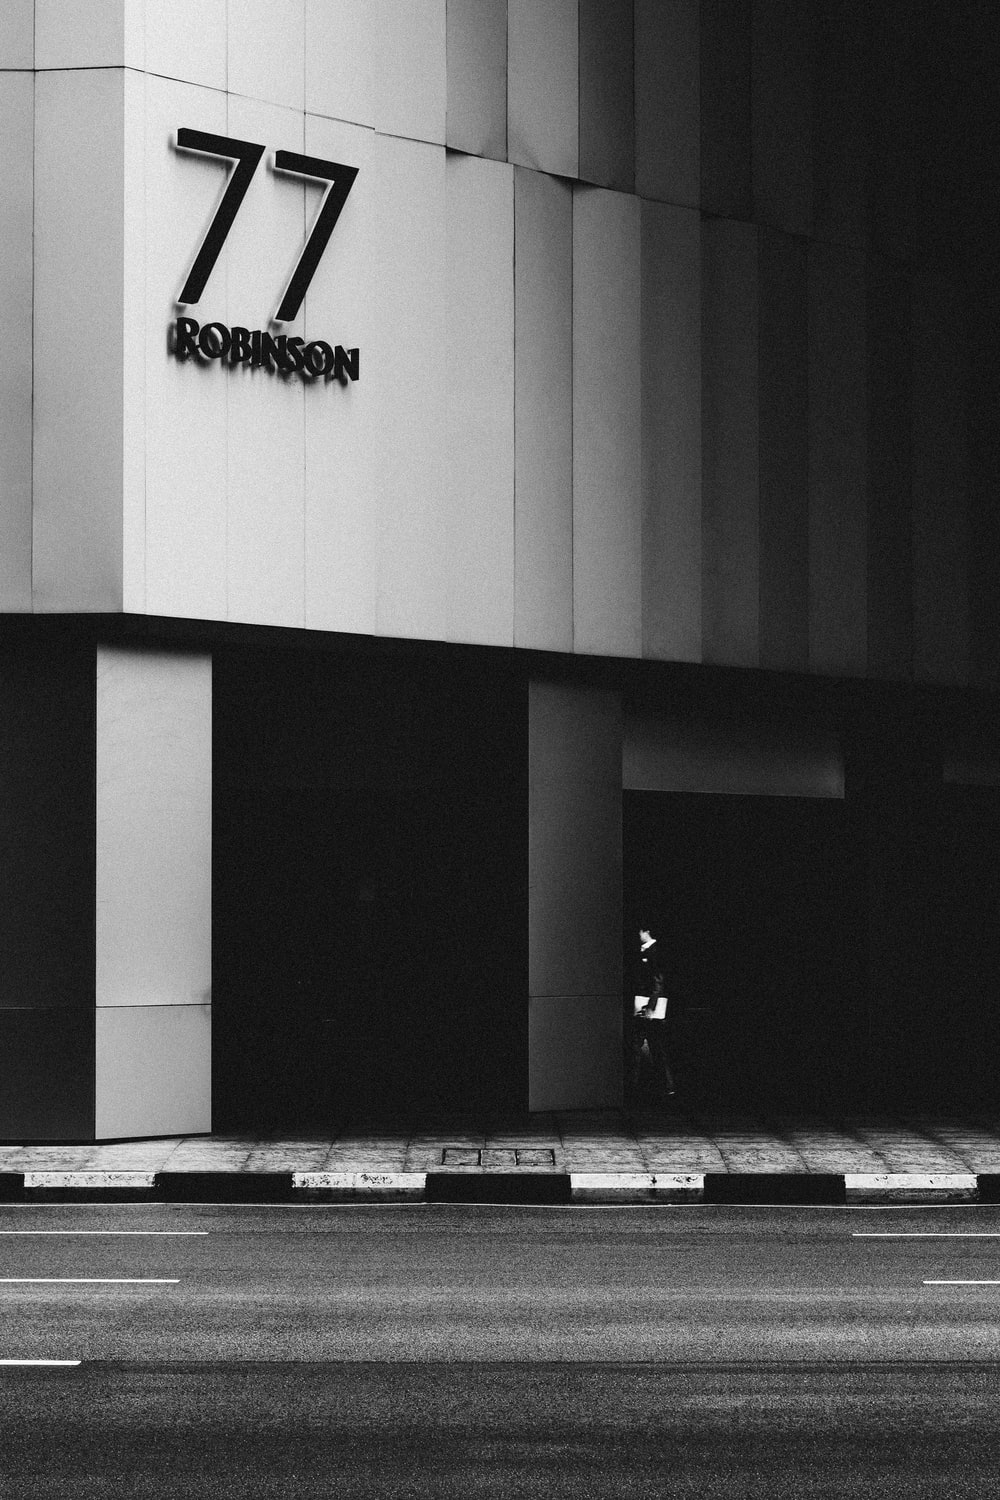 grayscale photo of building with 77 number